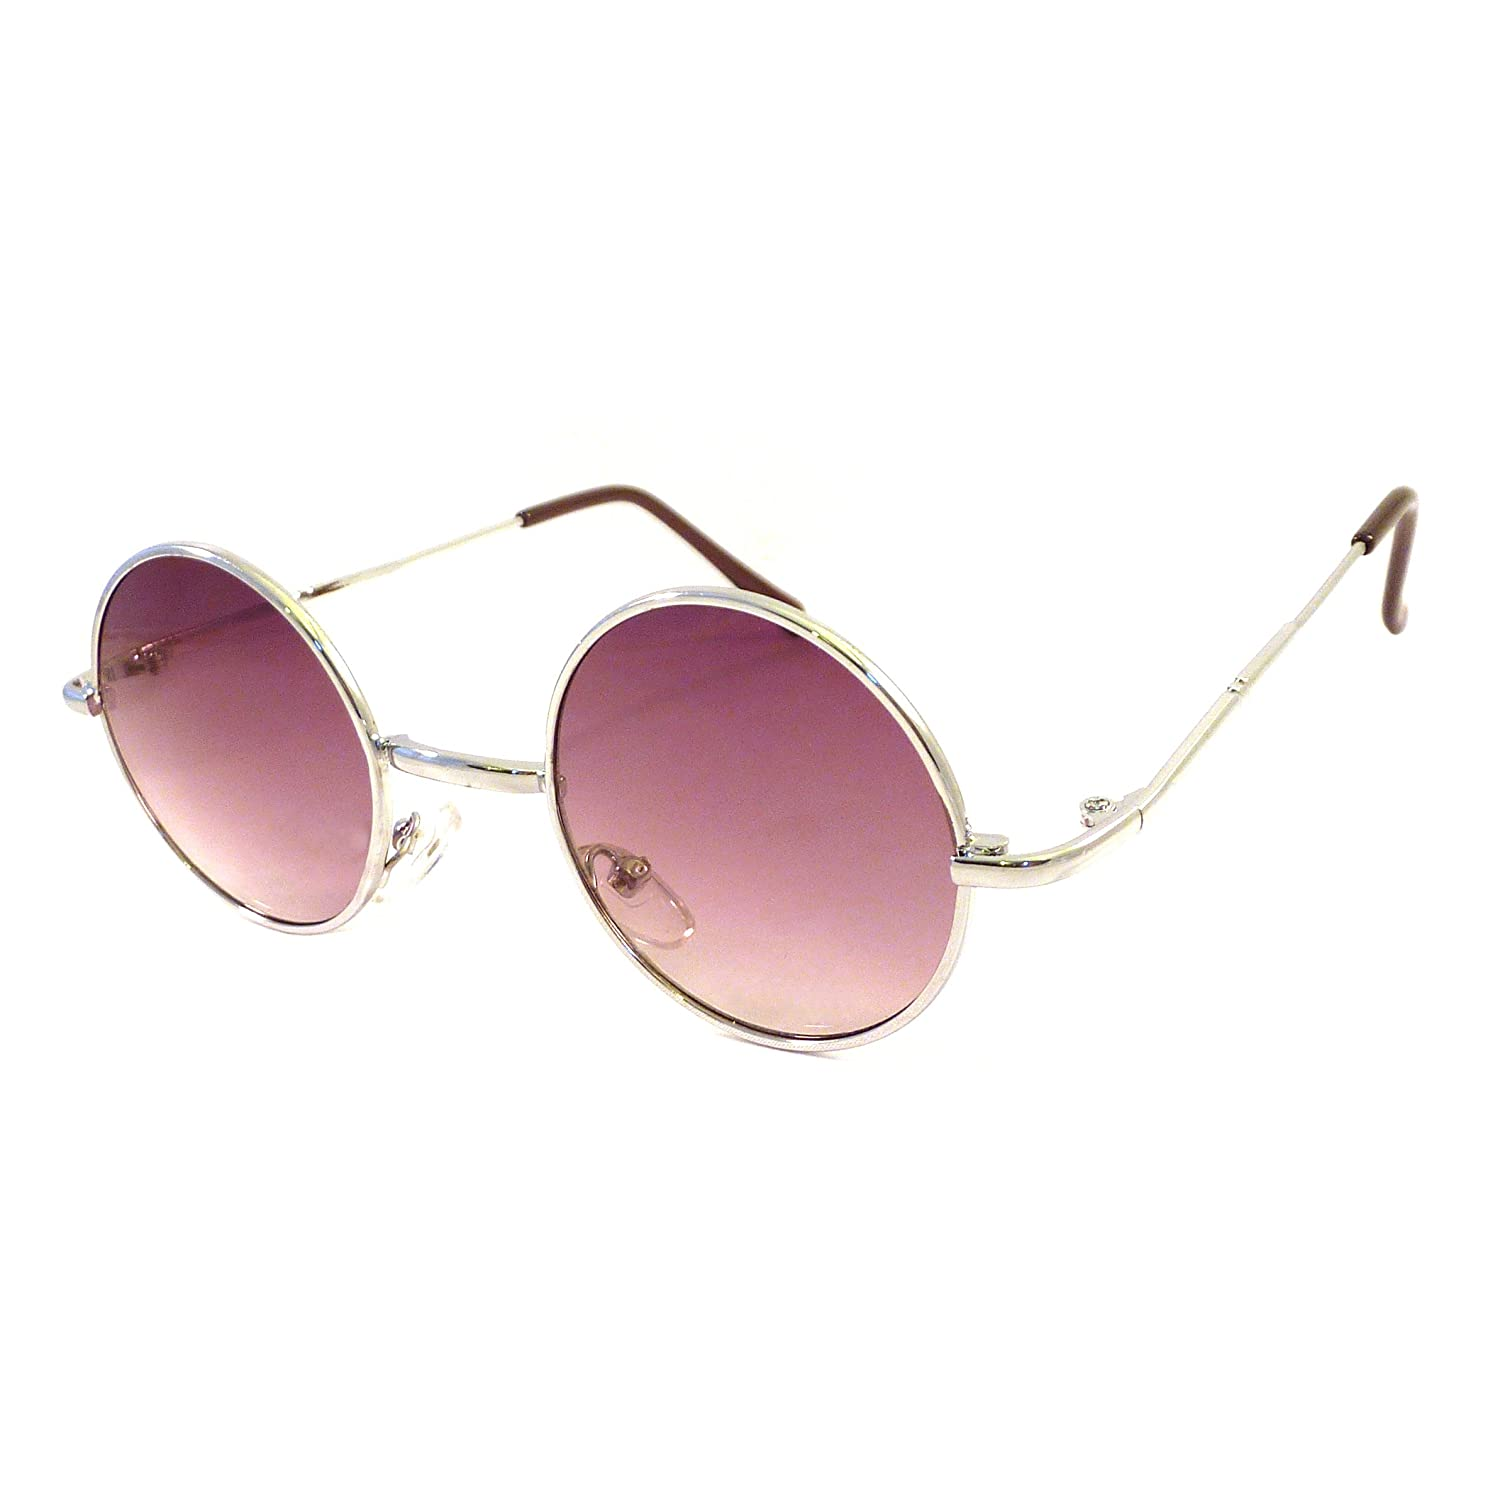 01291ea2f4 Amazon.com  VINTAGE 60s Lennon Style Small Round Metal Shades Sunglasses  SILVER GRADIENT  Clothing